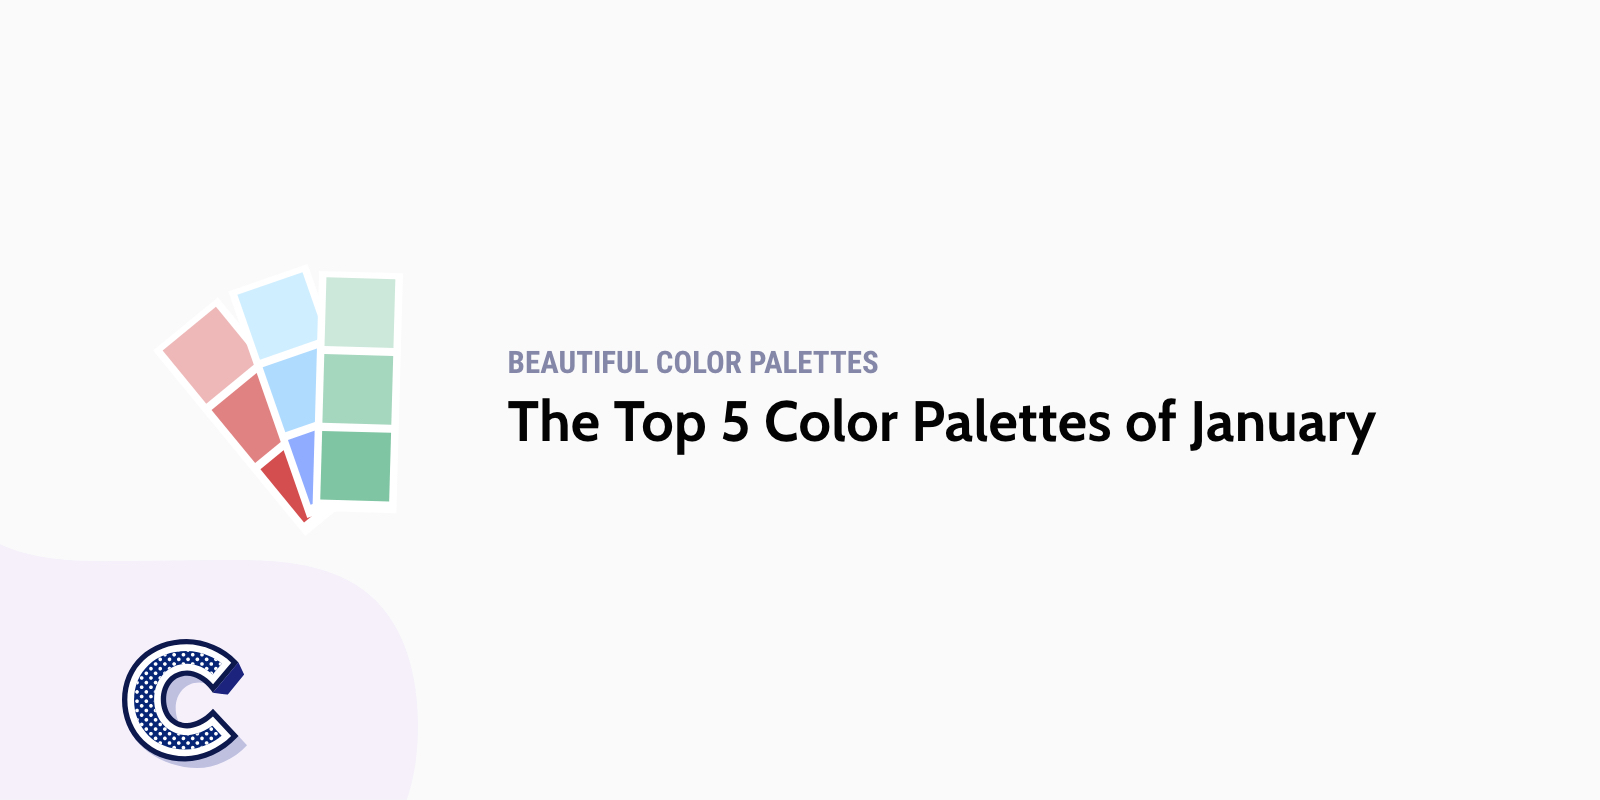 The Top 5 Color Palettes of January